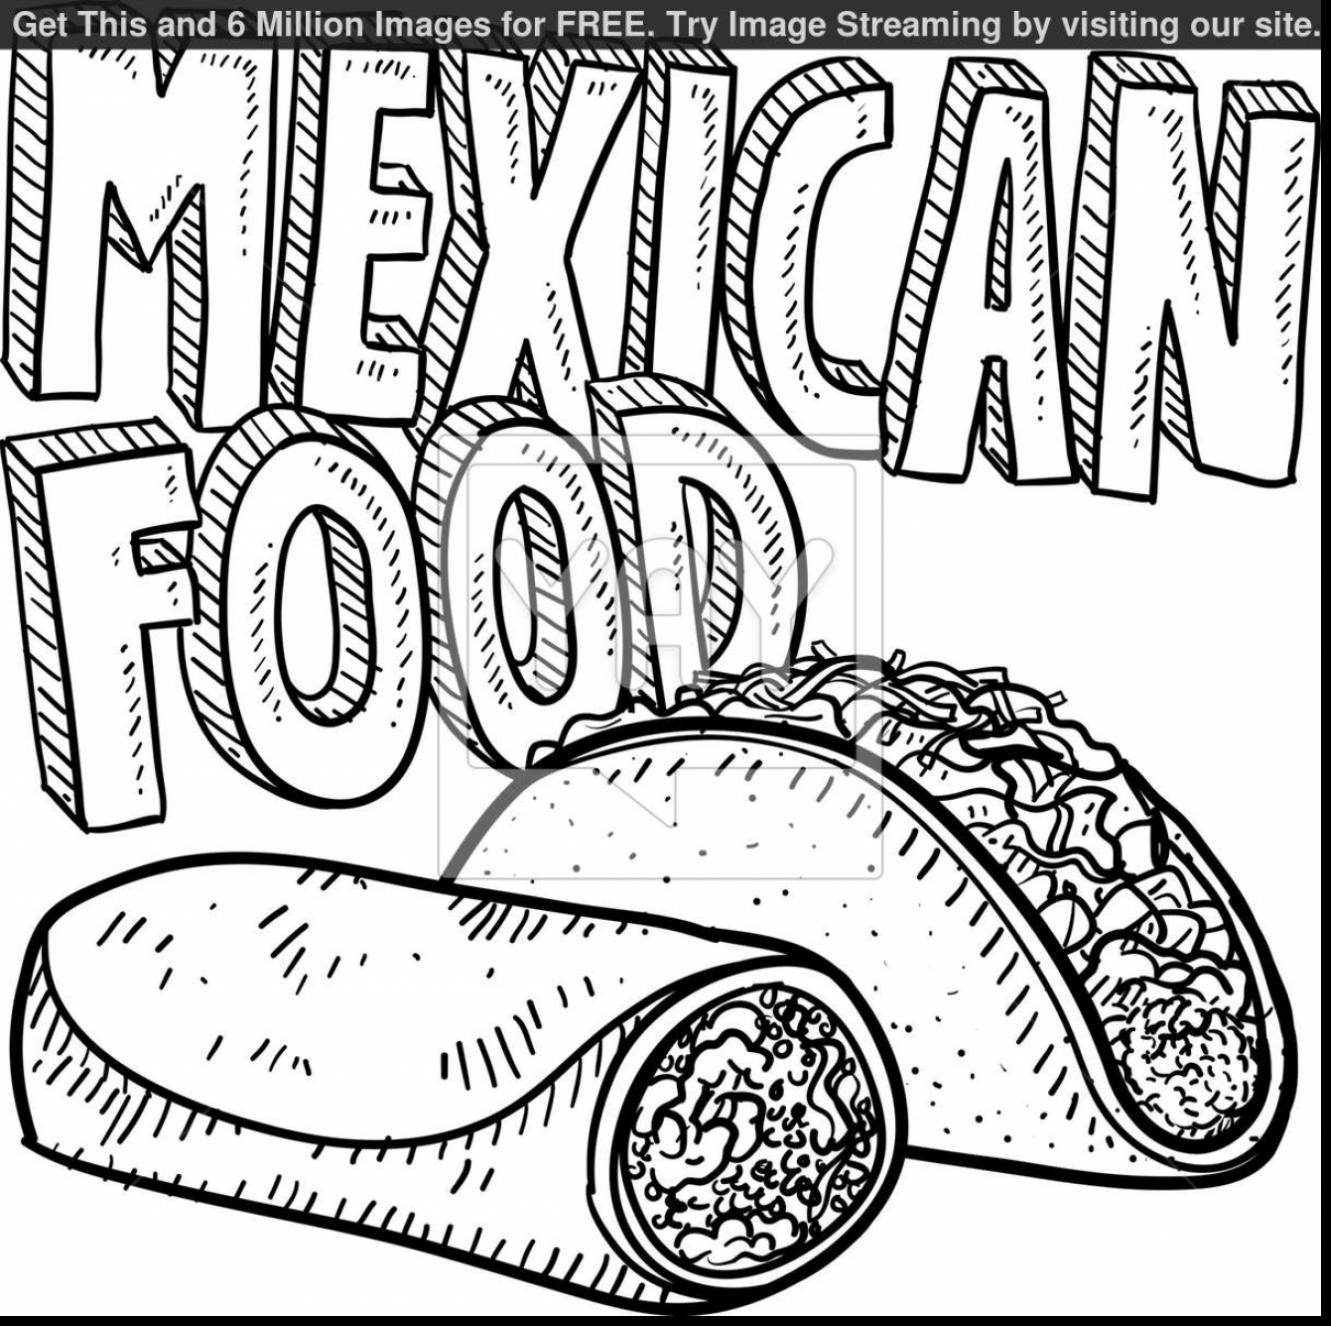 mexico coloring sheet mexico coloring pages at getcoloringscom free printable sheet coloring mexico